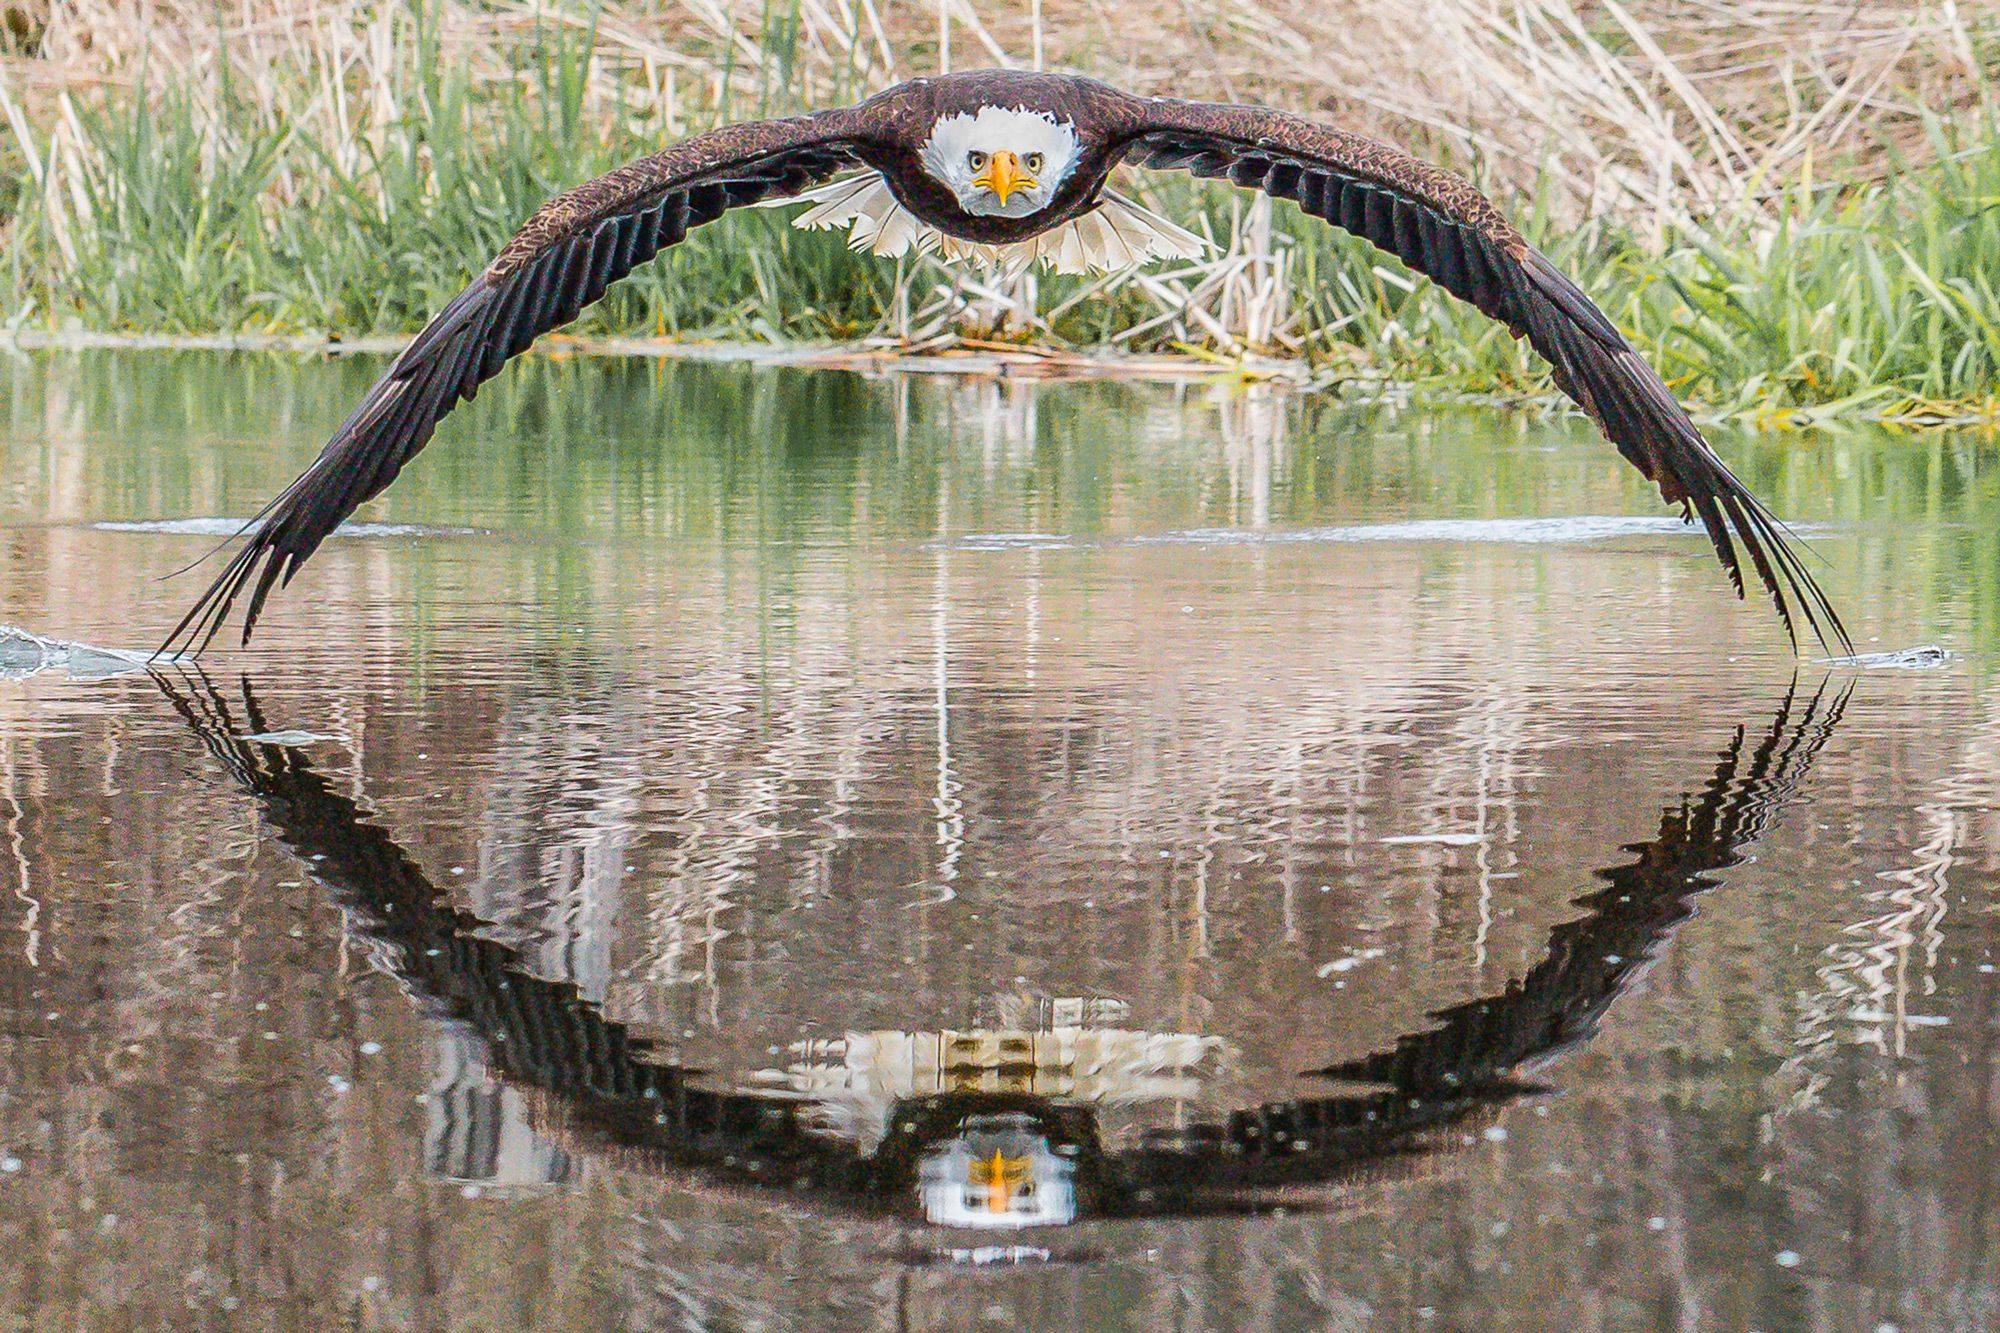 Bruce The Eagle Gets His 15 Minutes Of Fame In A Symmetrical Glamour Shot By Photographer Steve Biro Bald Eagle Eagle Pictures Bald Eagle Pictures